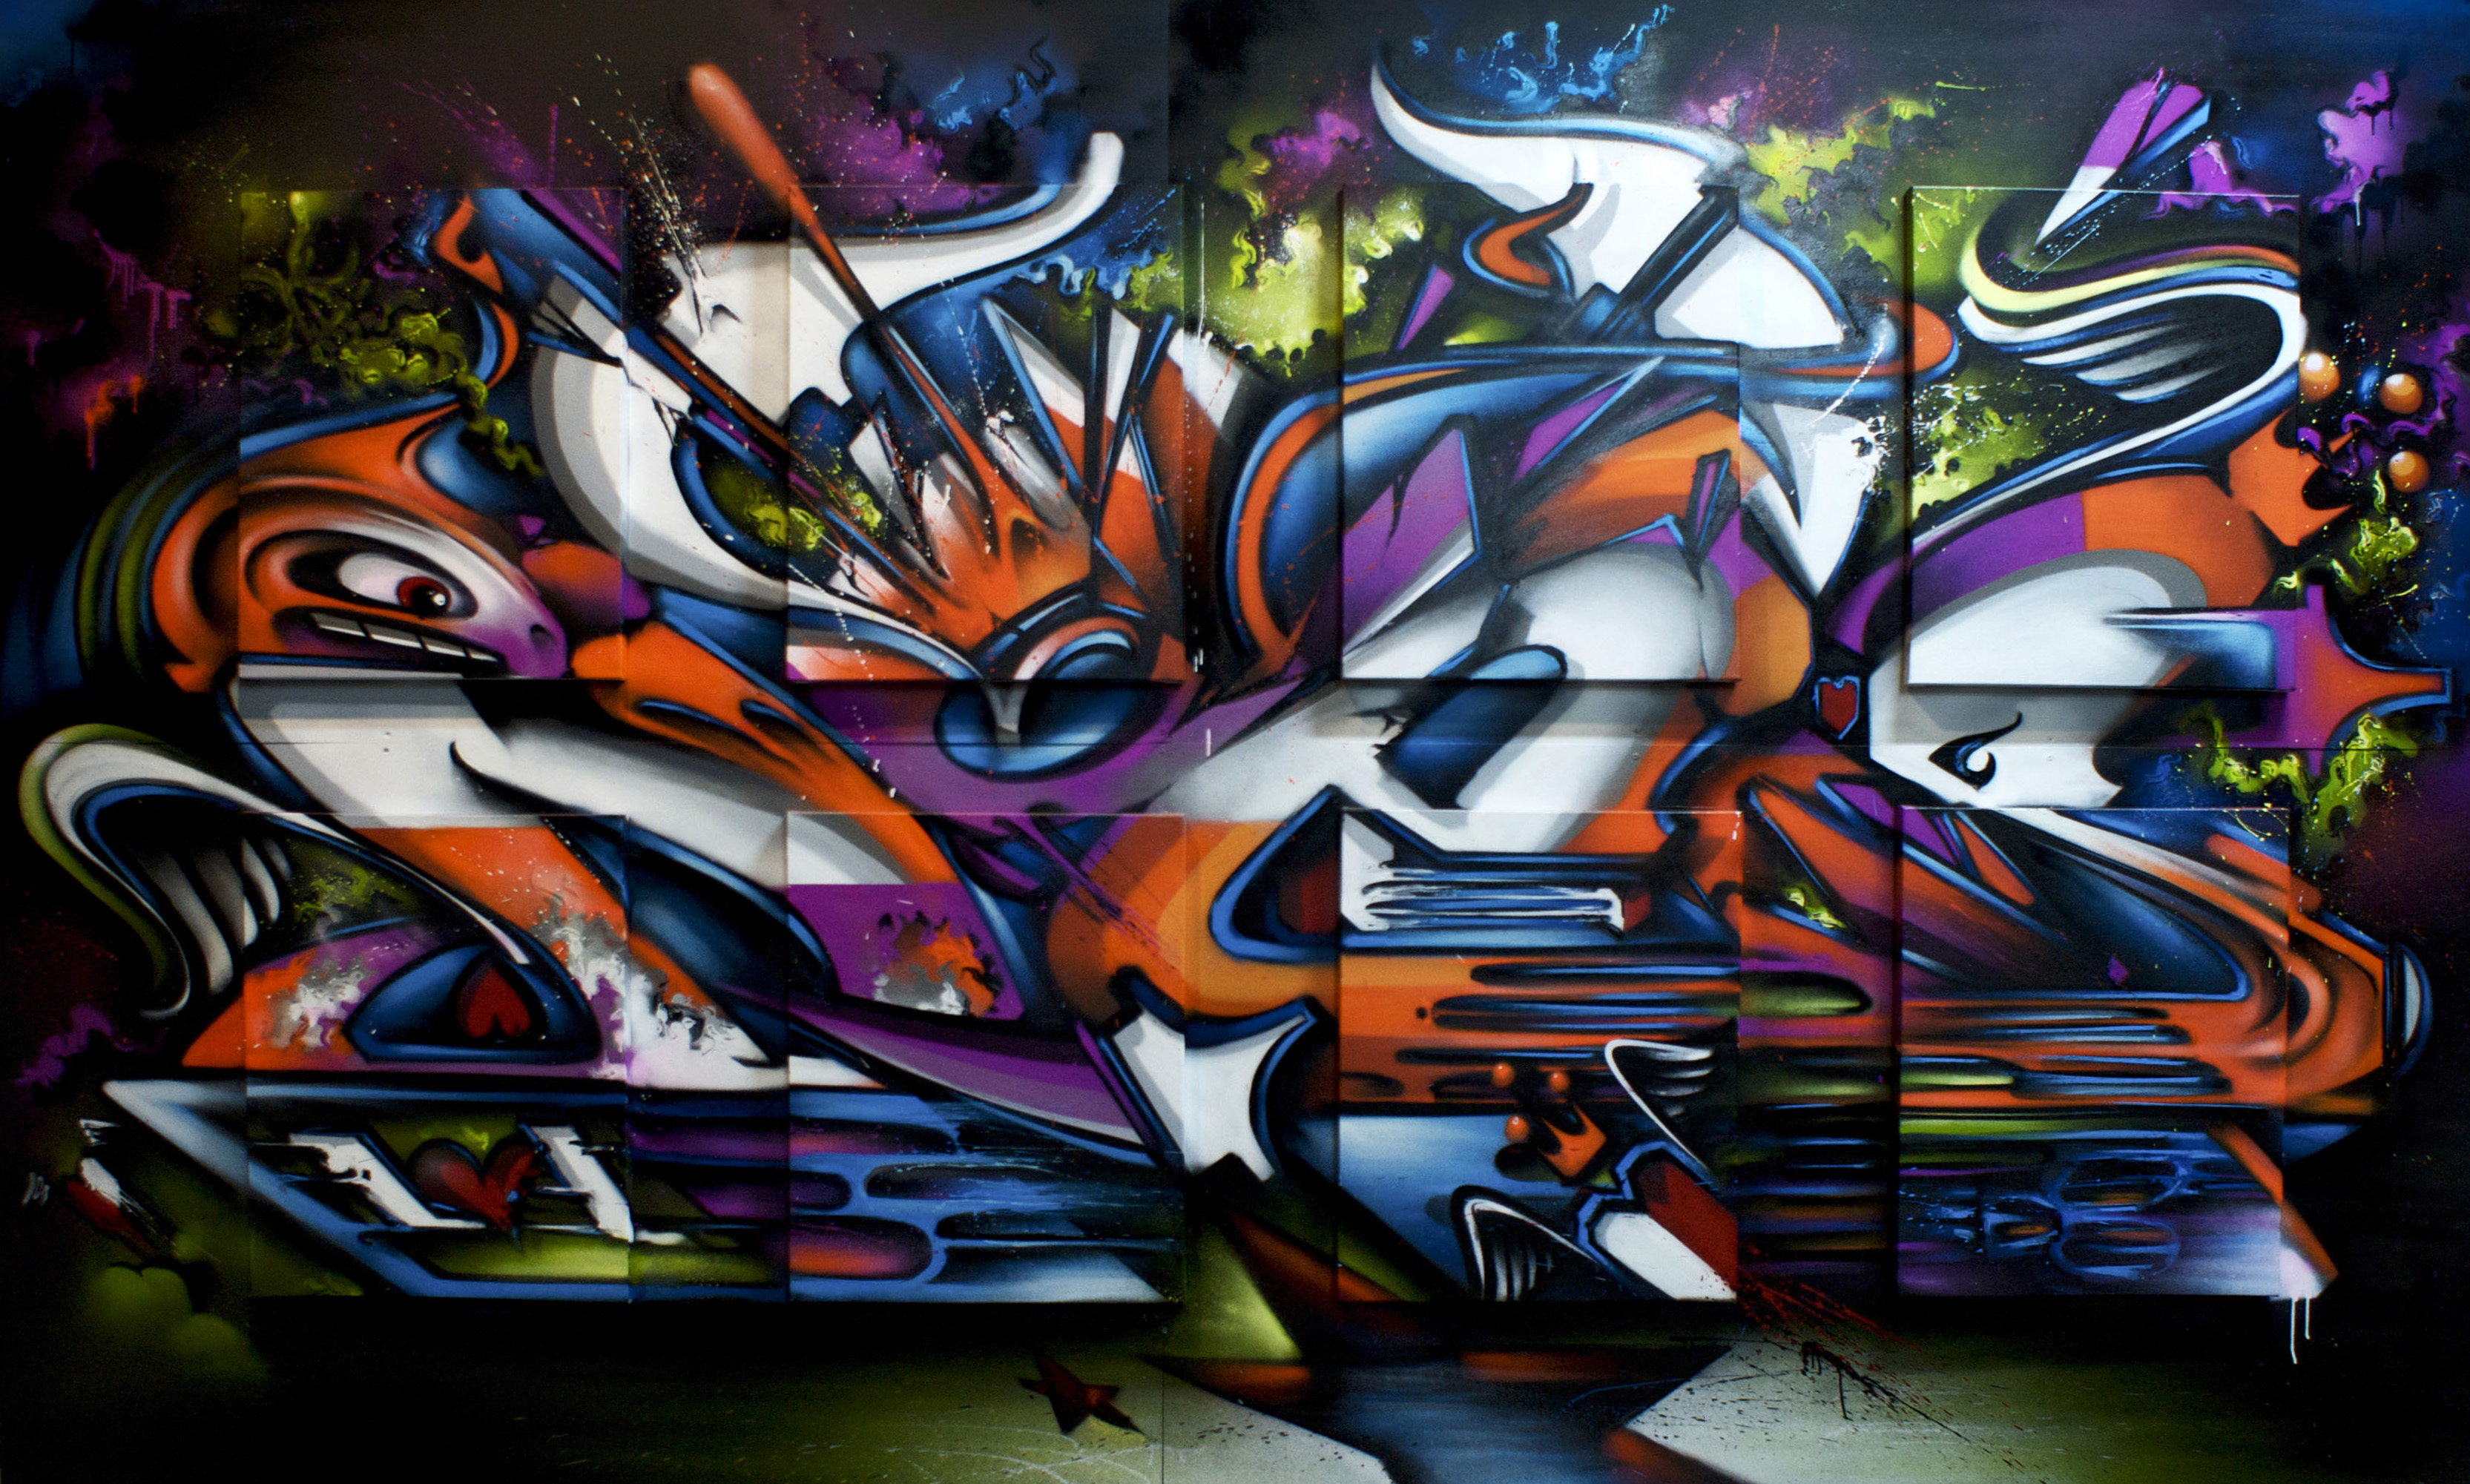 A work by Does - Melbourne 1